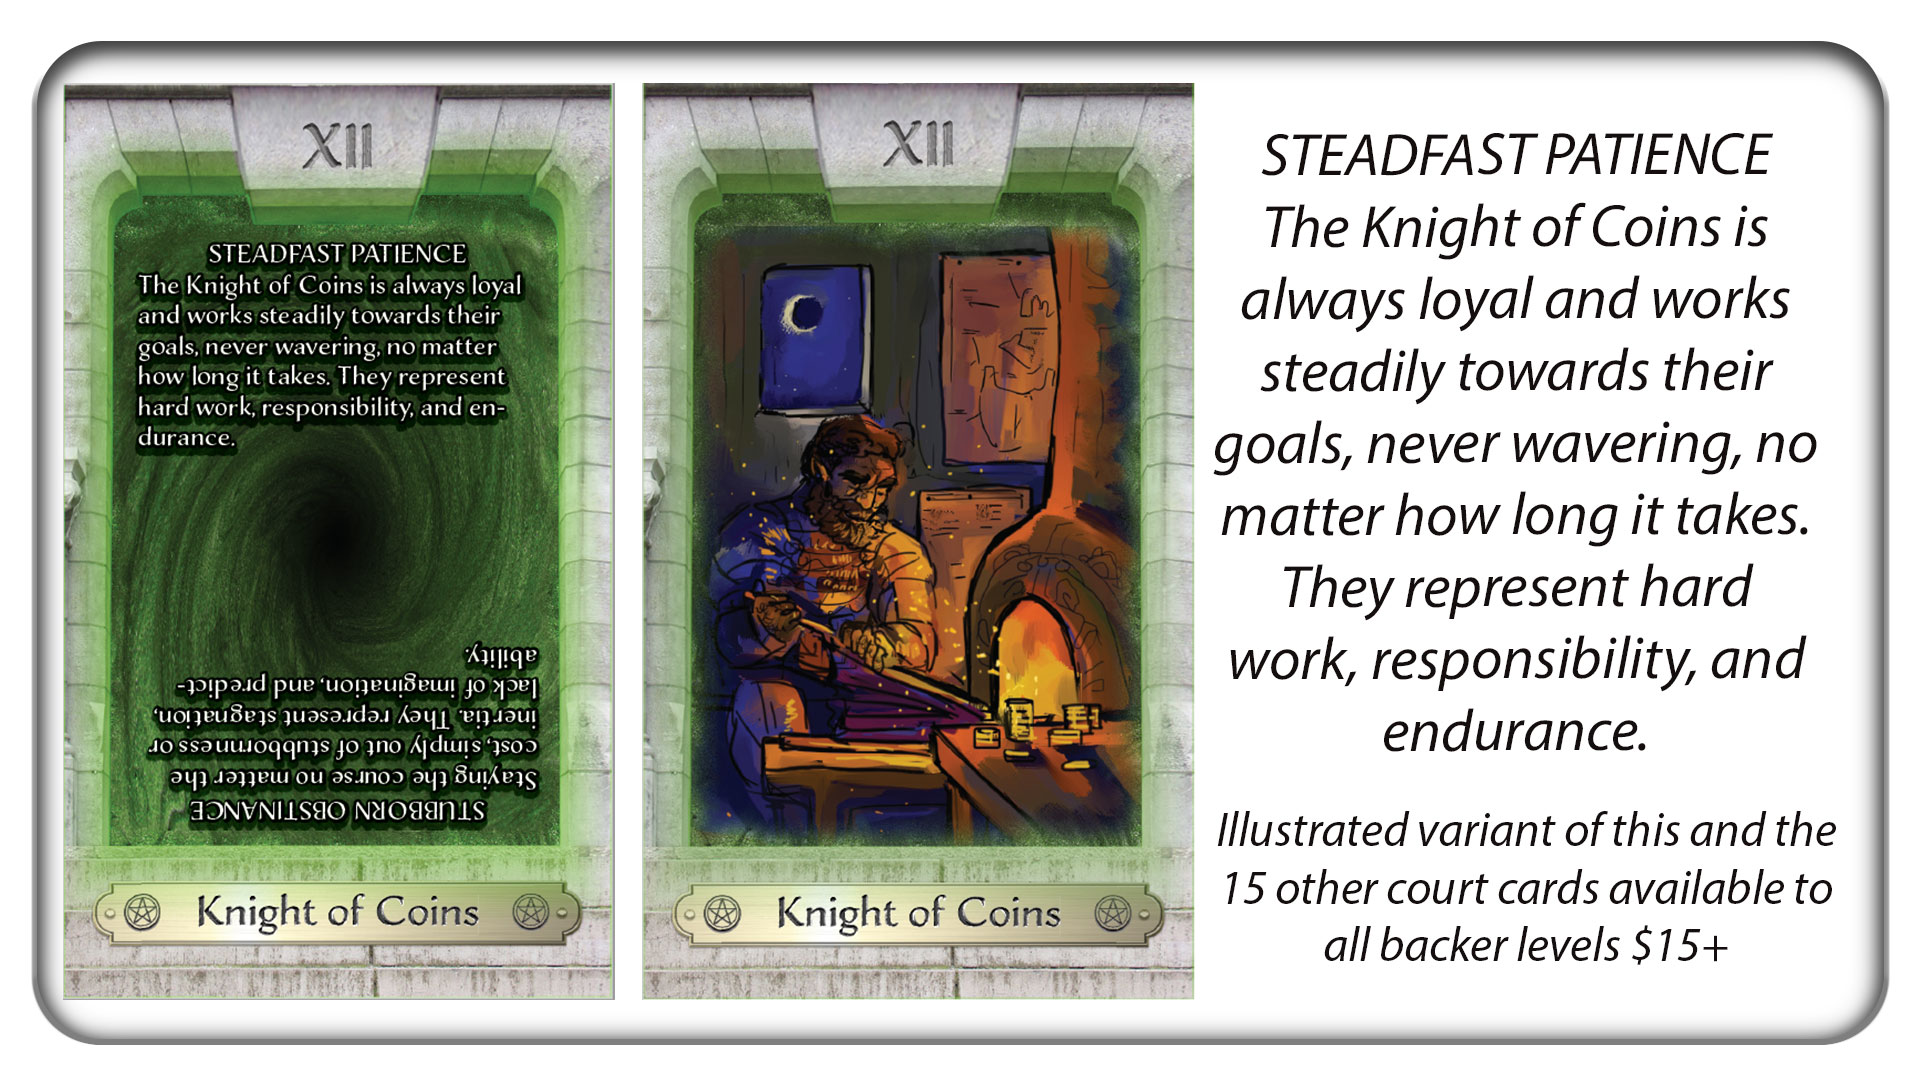 The Knight of Coins: Steadfast Patience